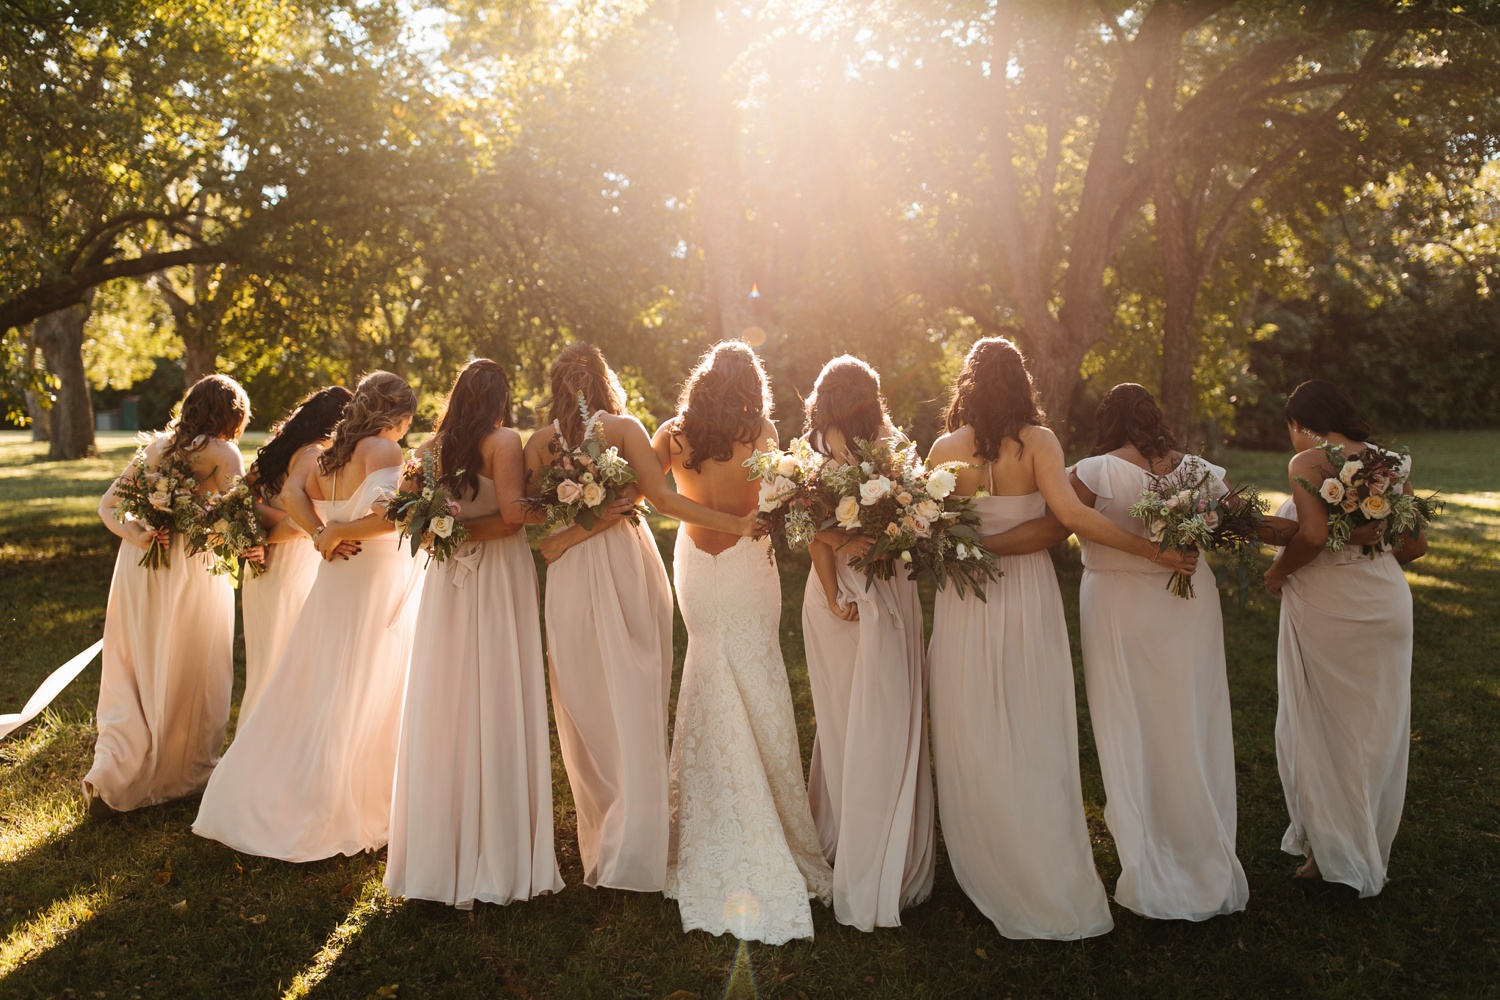 Erica + Henry | a bohemian inspired wedding at Chandlers Gardens in Salina, TX by North Texas Wedding Photographer Rachel Meagan Photography 055